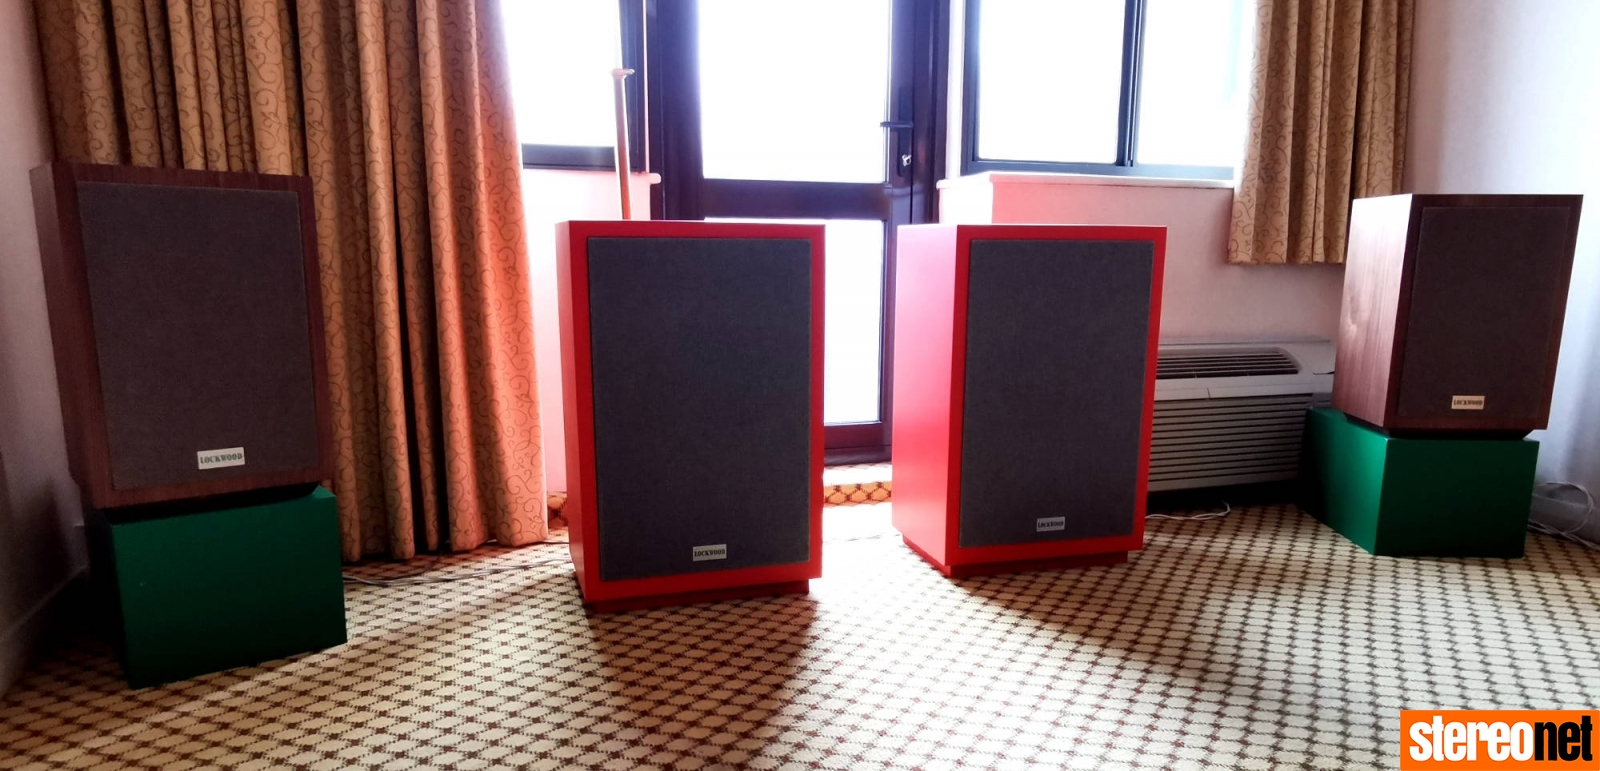 Lockwood Bristol hifi show 2020 report